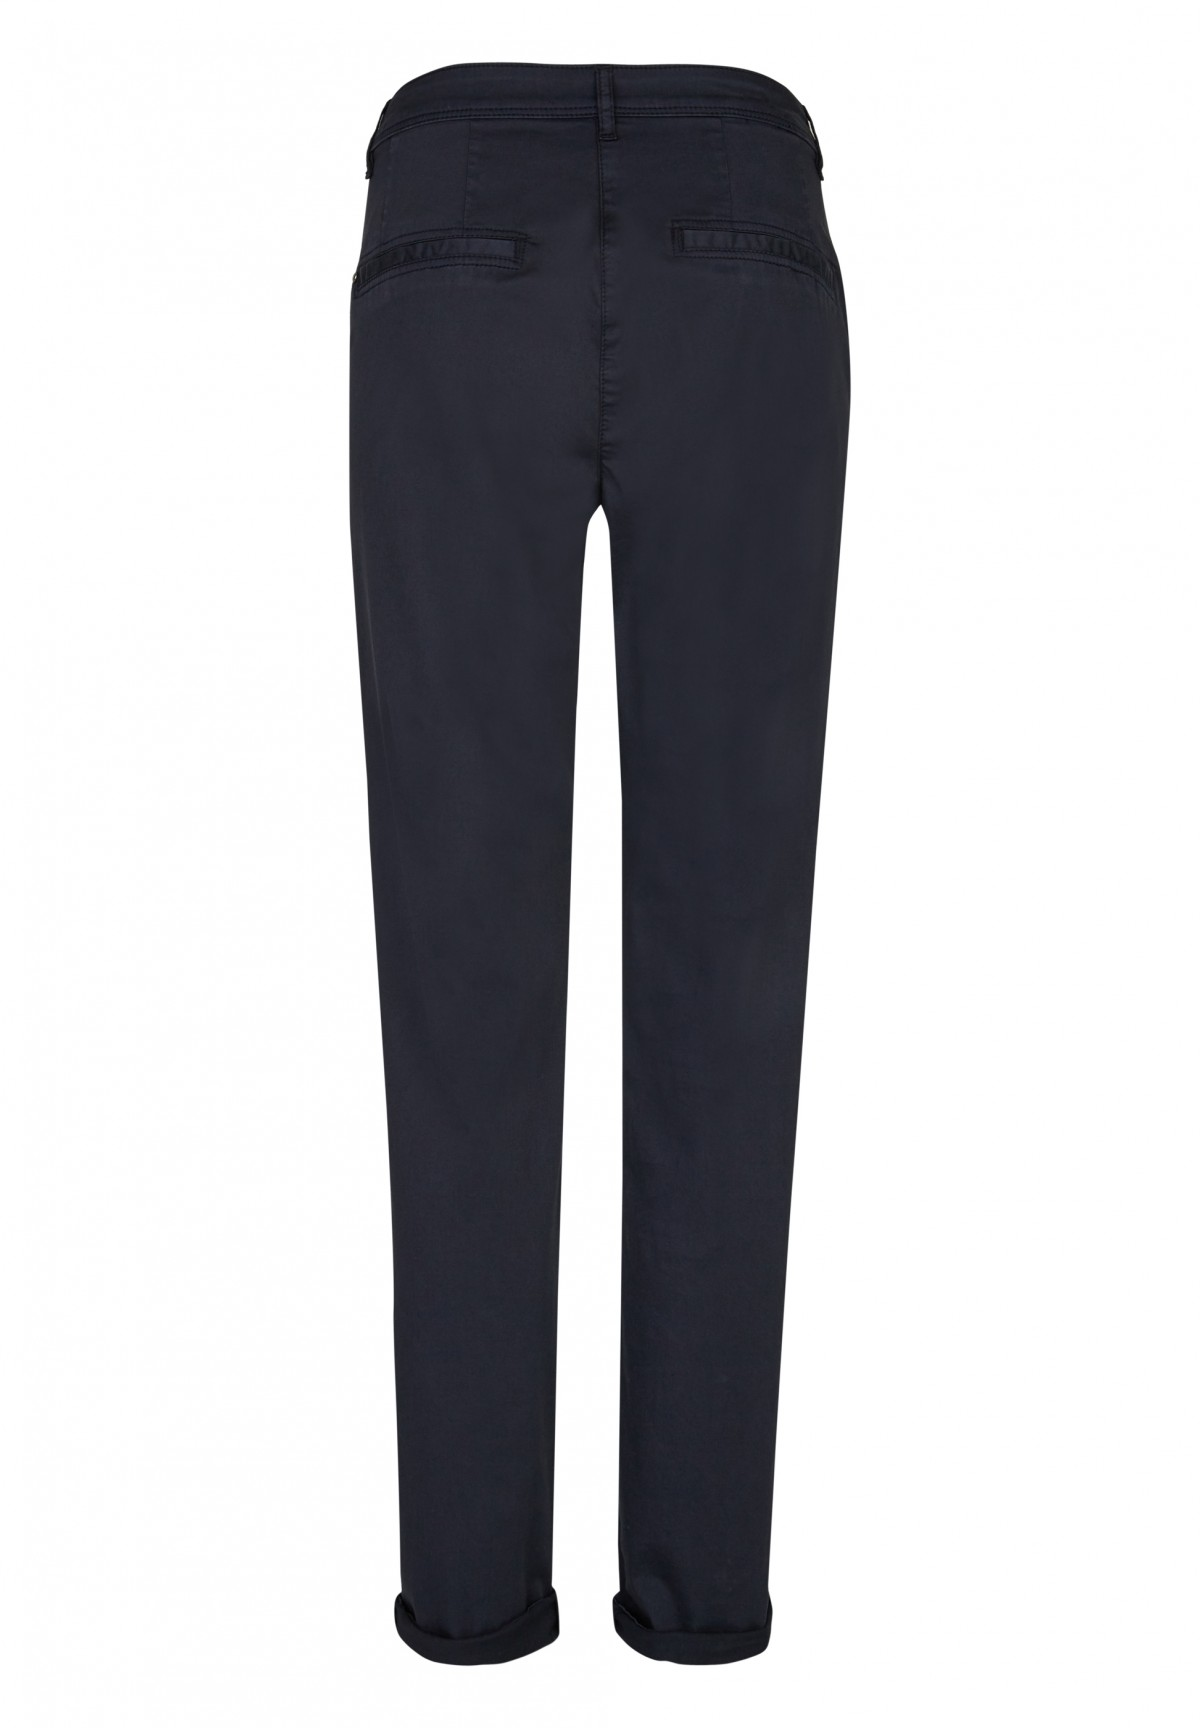 Sportive Hose im 5-Pocket-Style / Casual Chino Pants